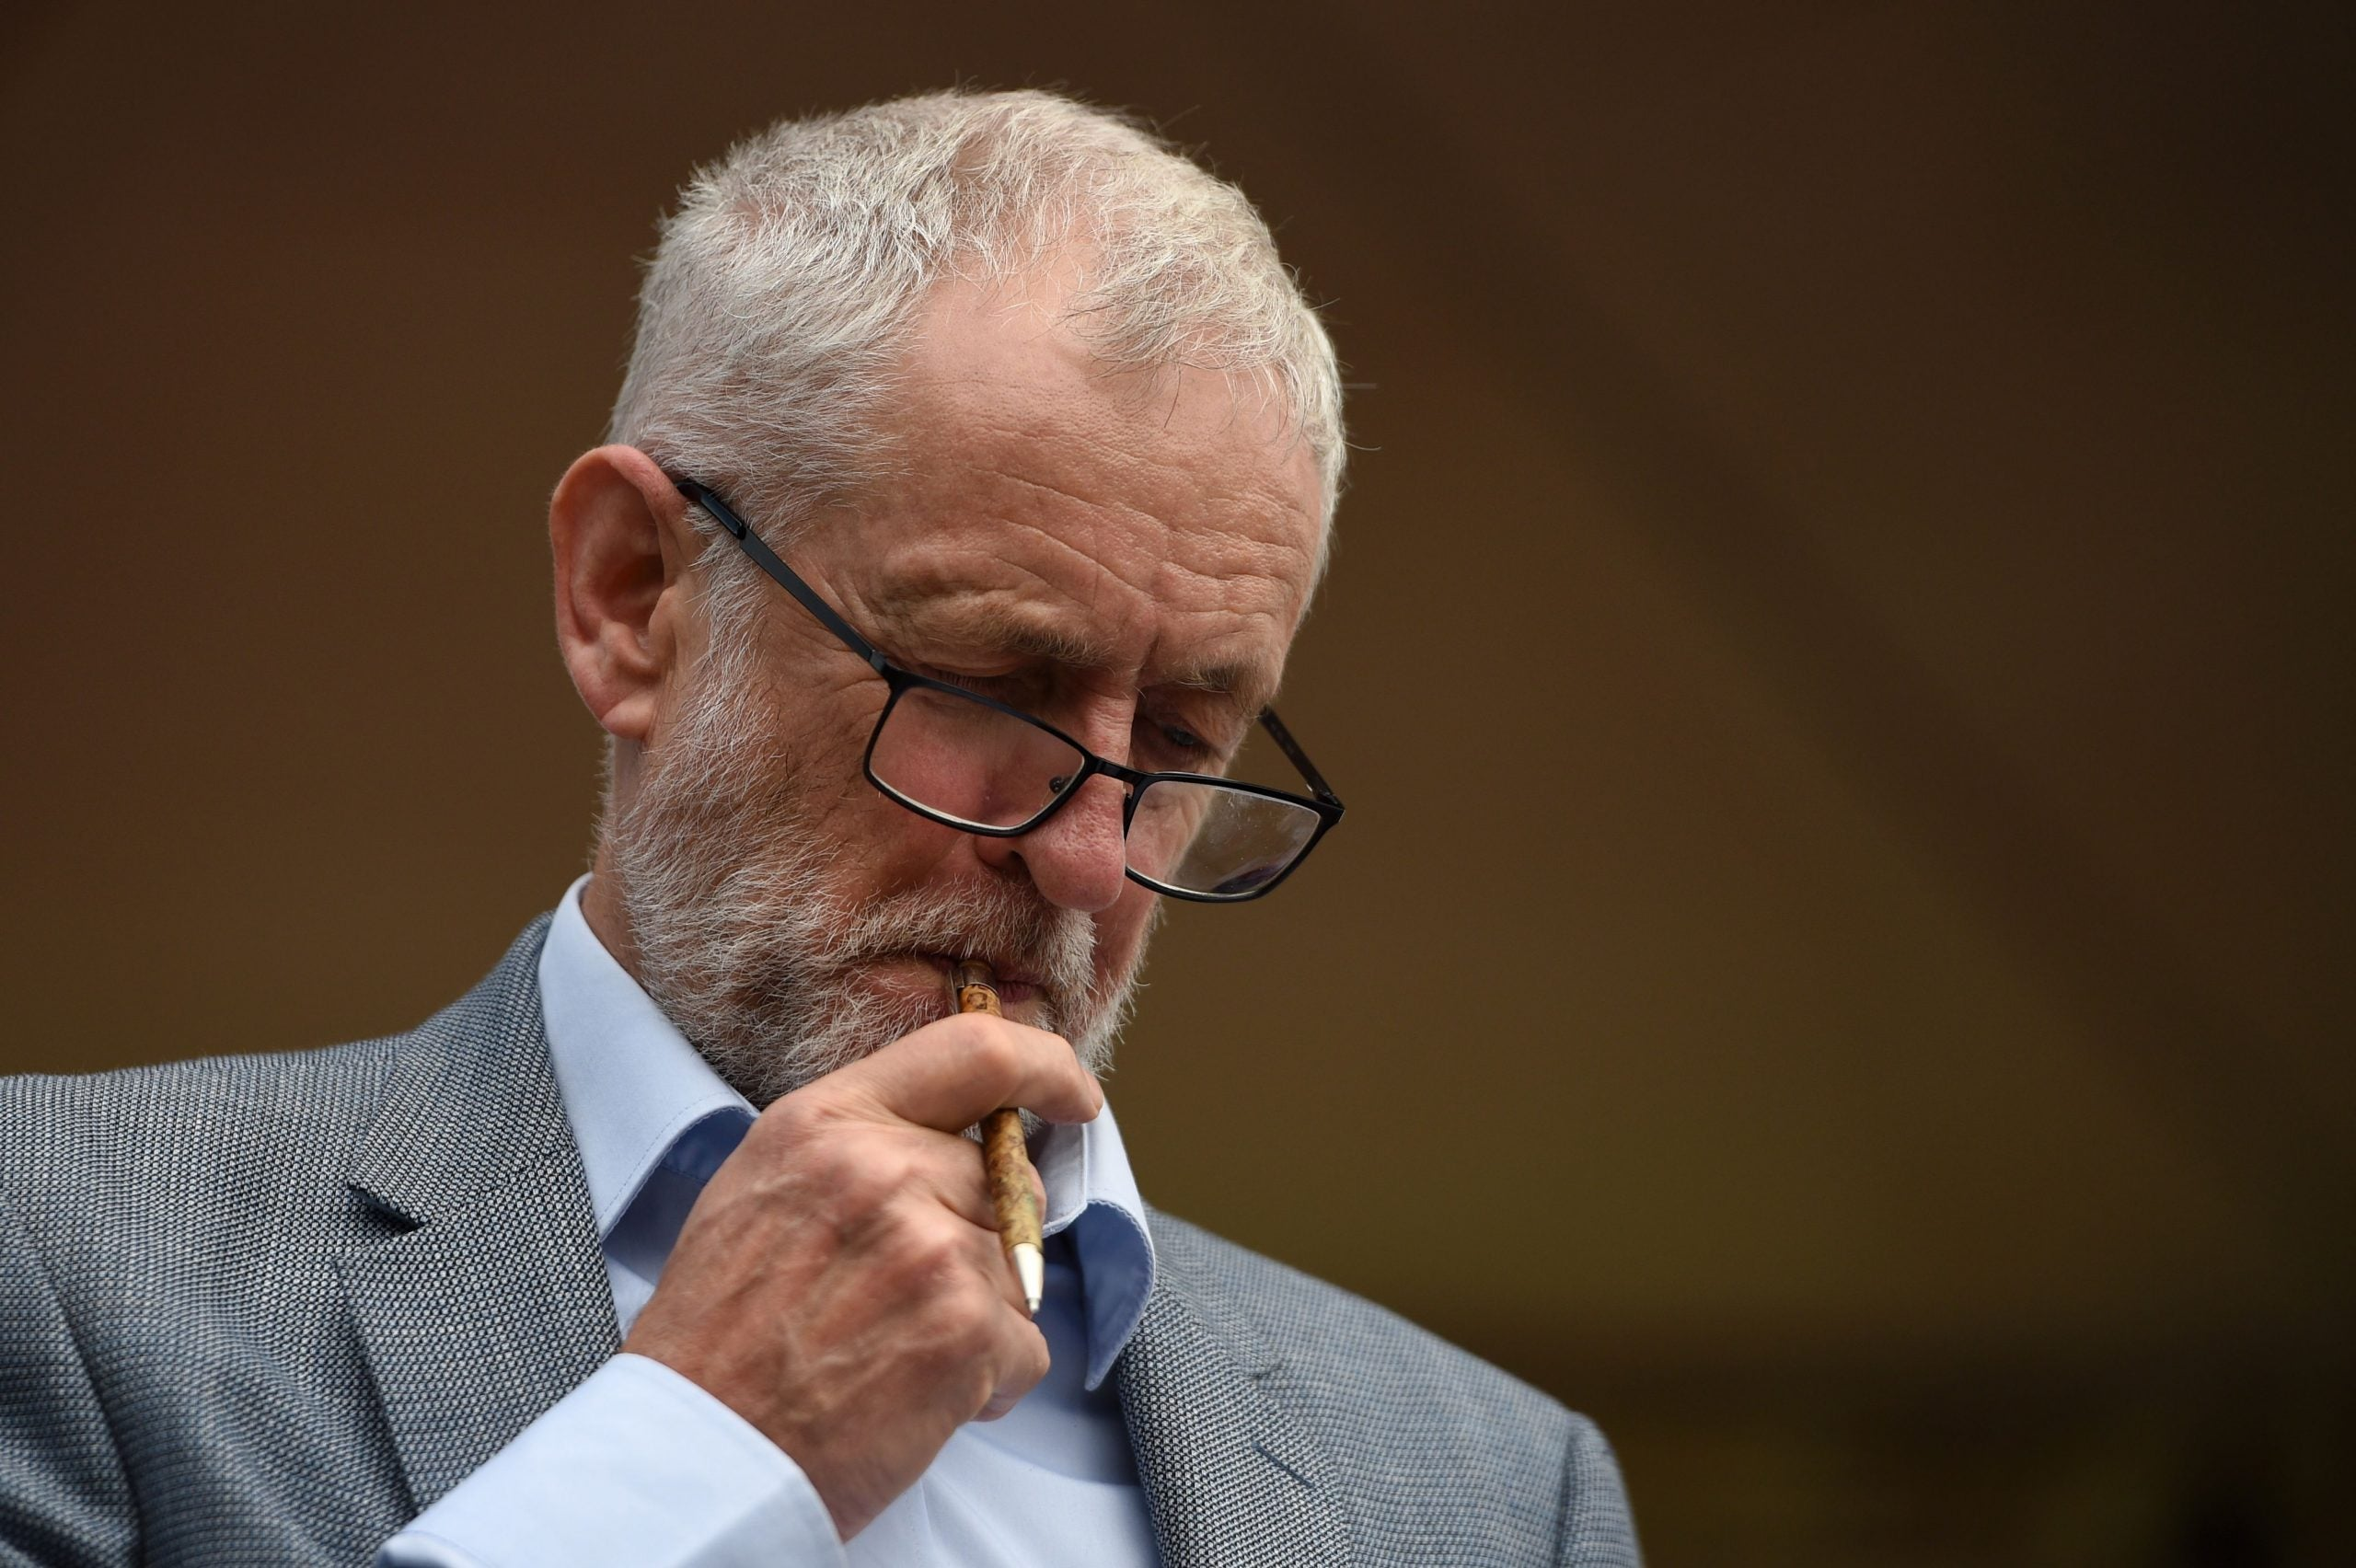 Jeremy Corbyn must resign as Labour leader before the party loses all hope